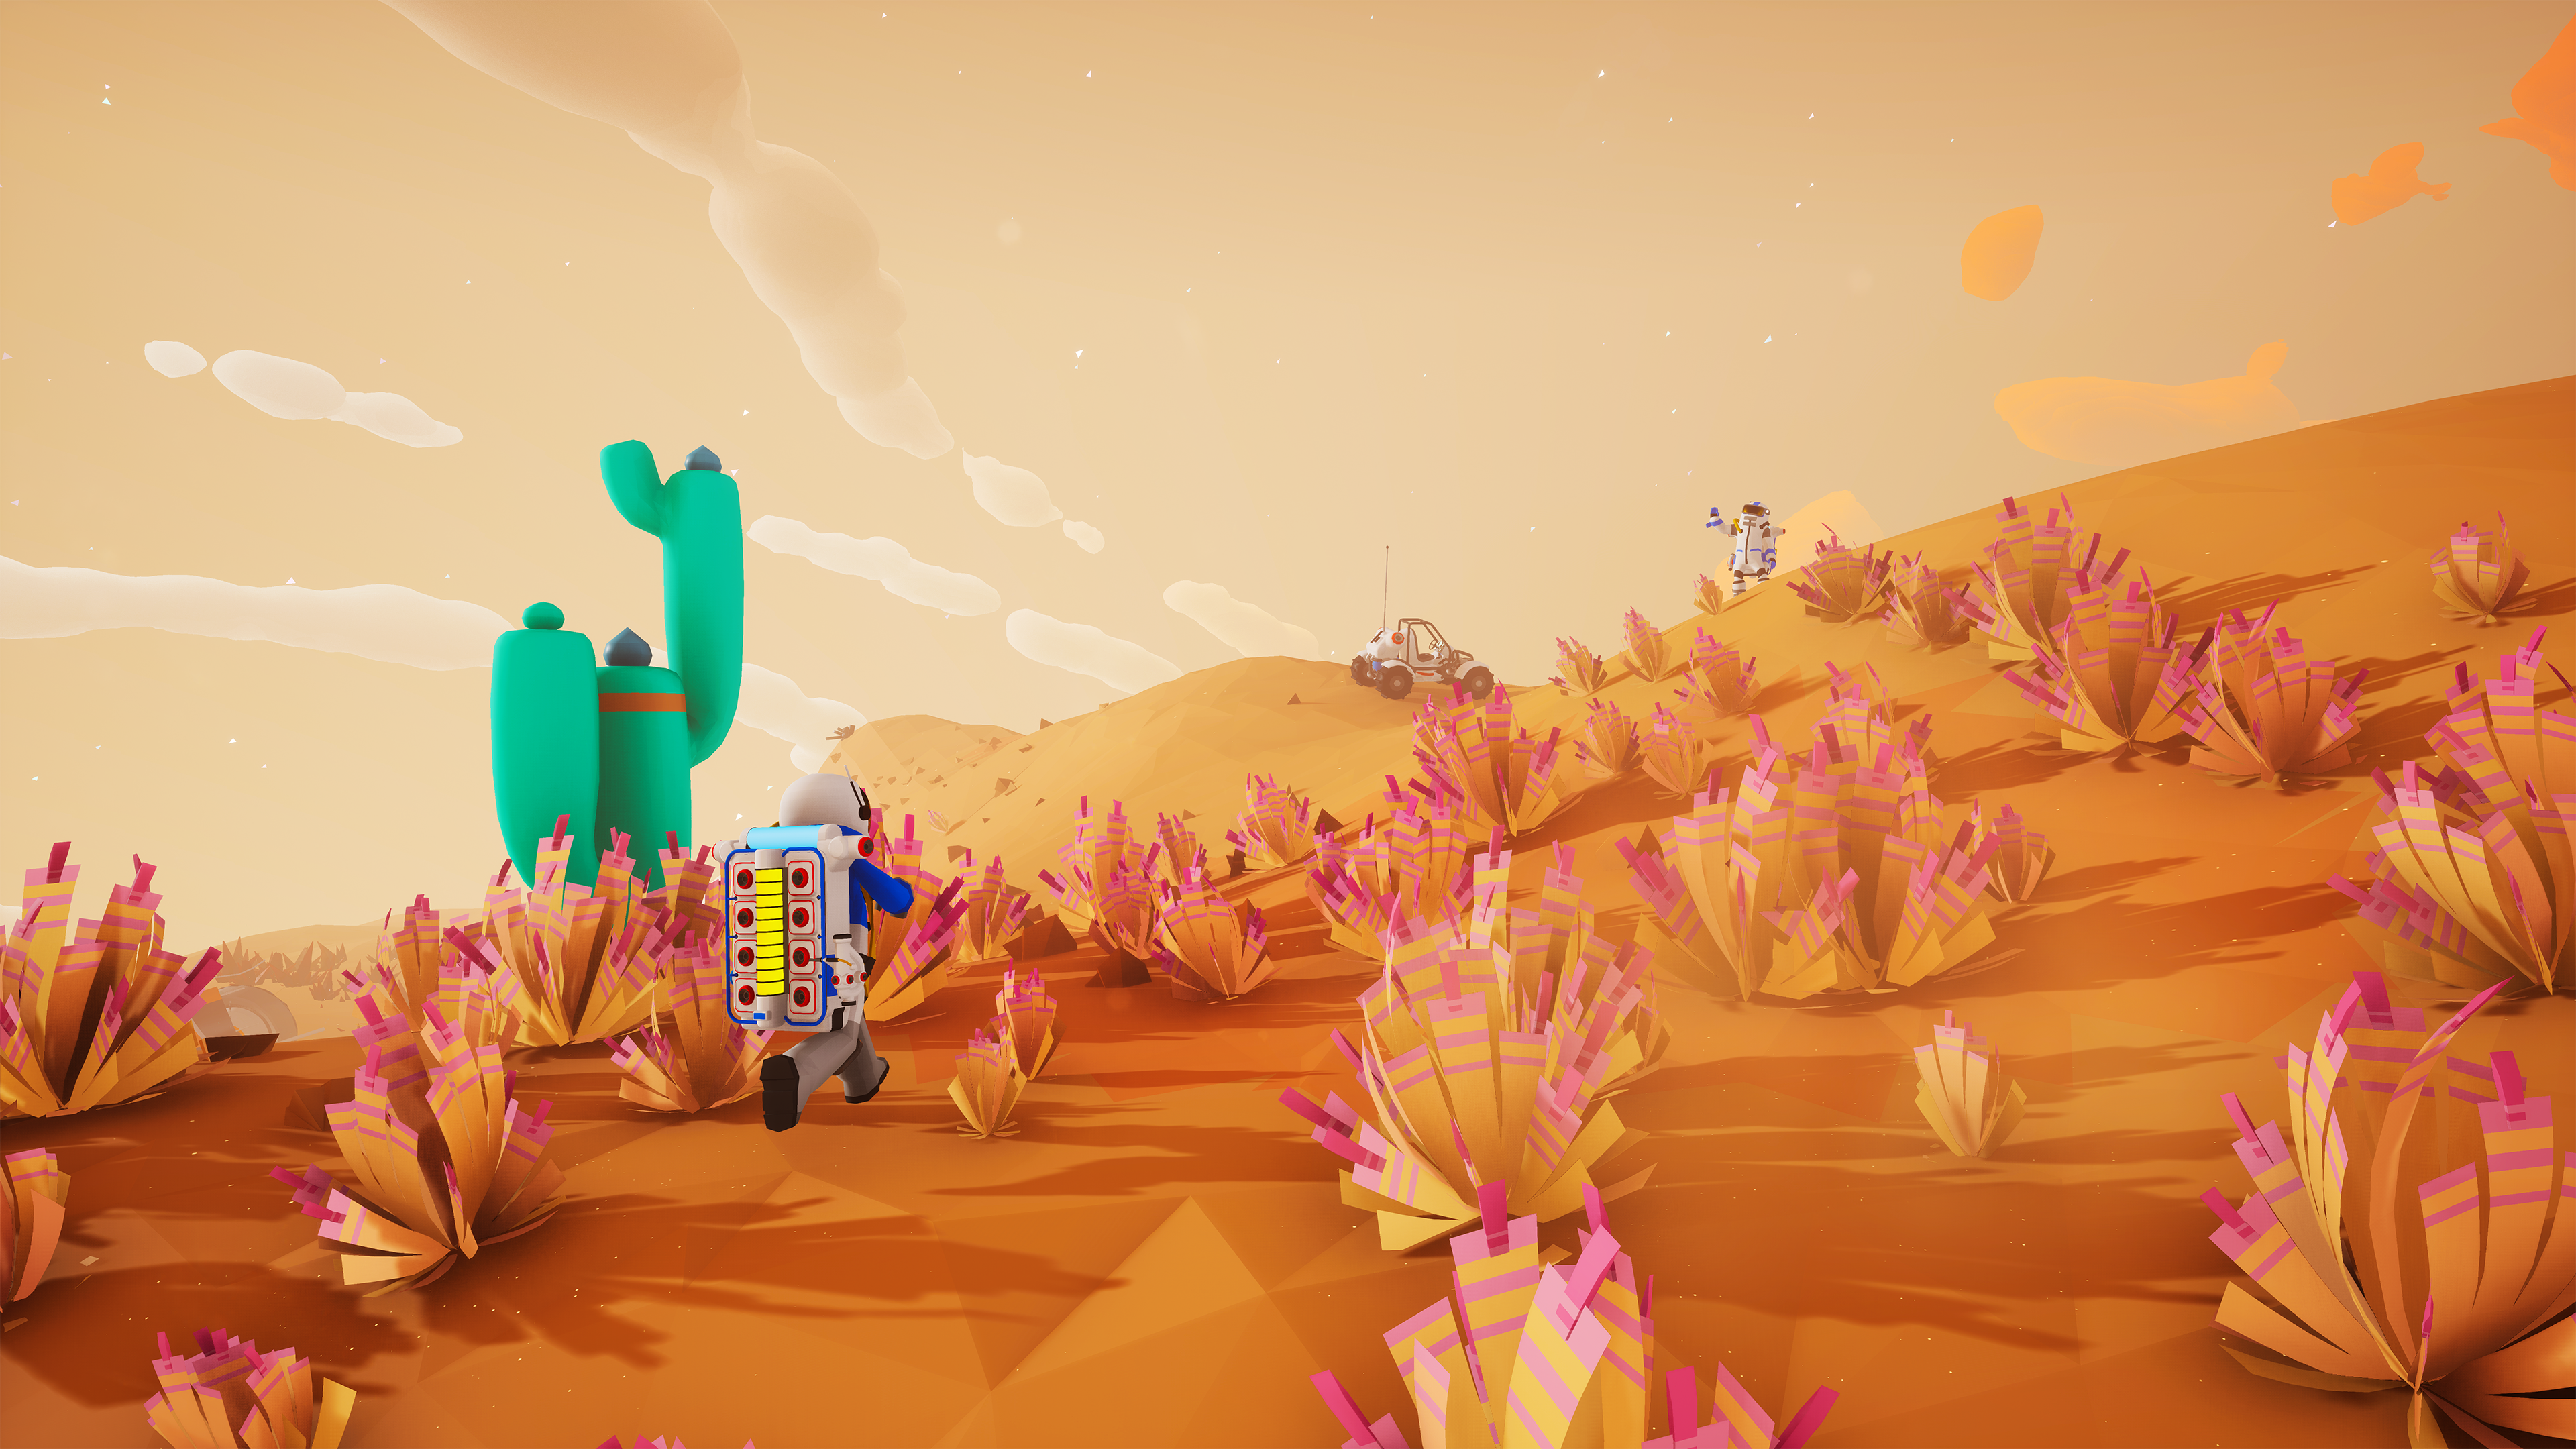 Astroneer Review Presentation image